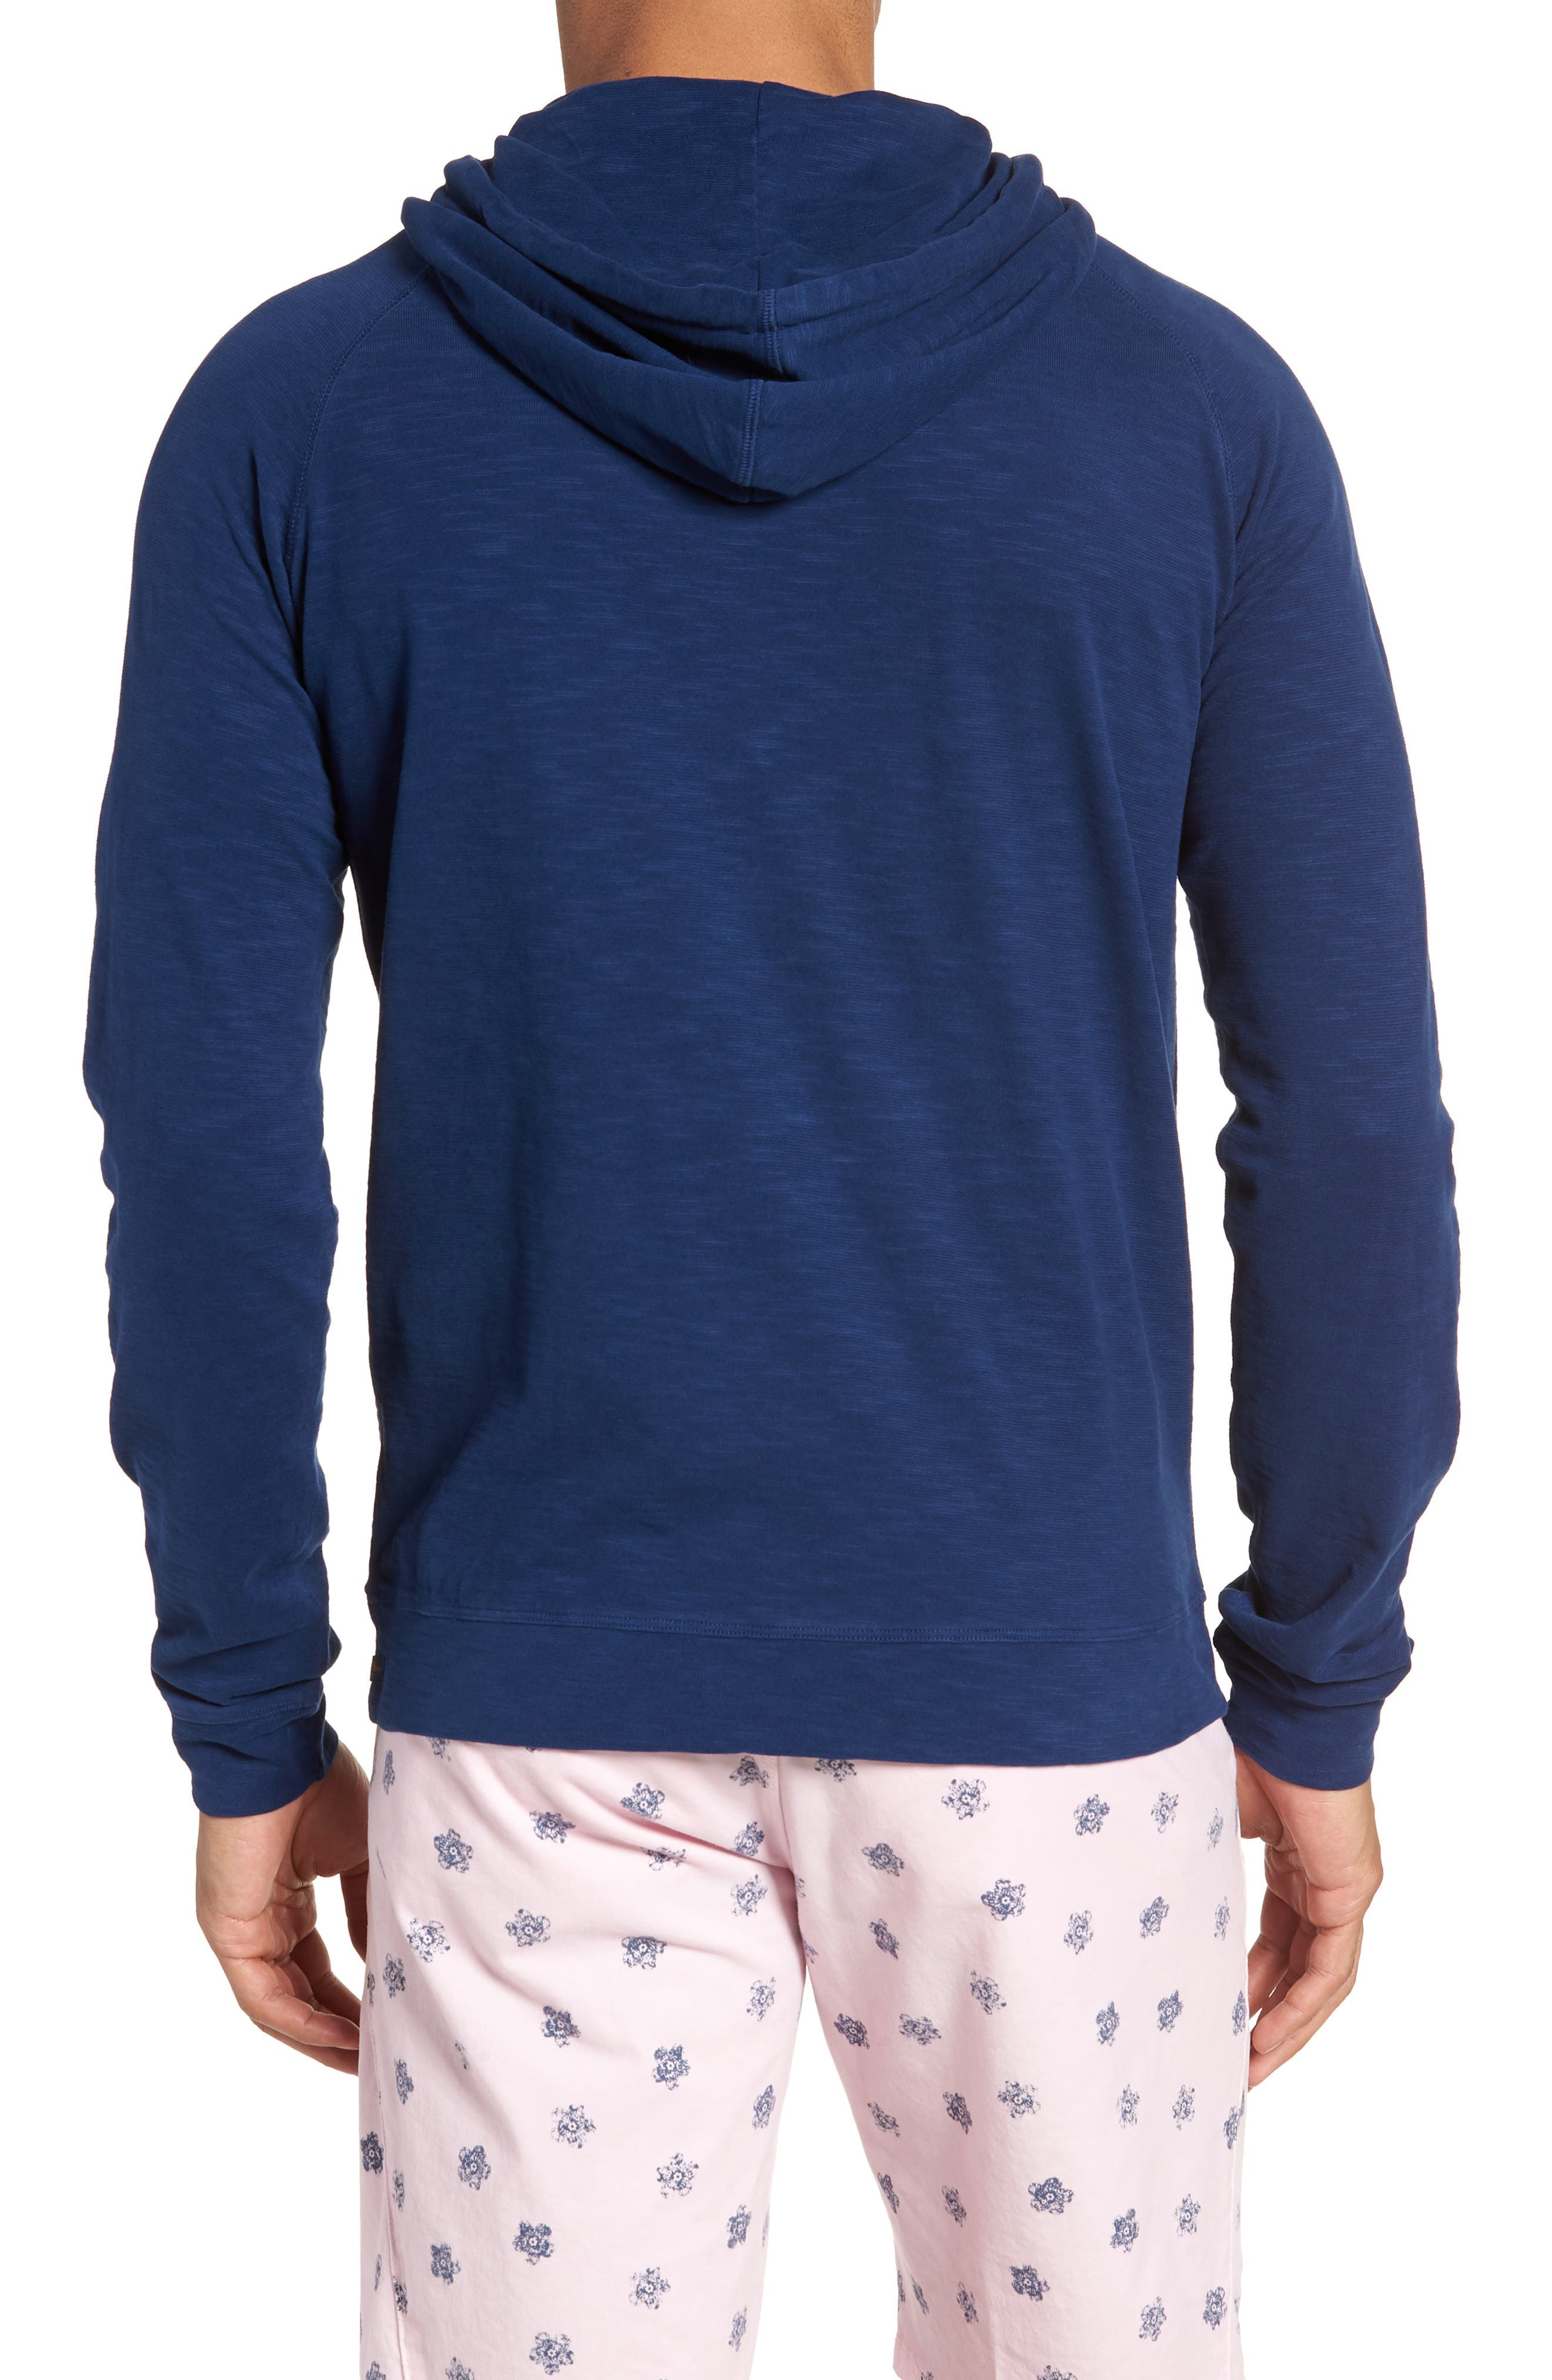 Trim Fit Pullover Hoodie,                             Alternate thumbnail 2, color,                             Blue